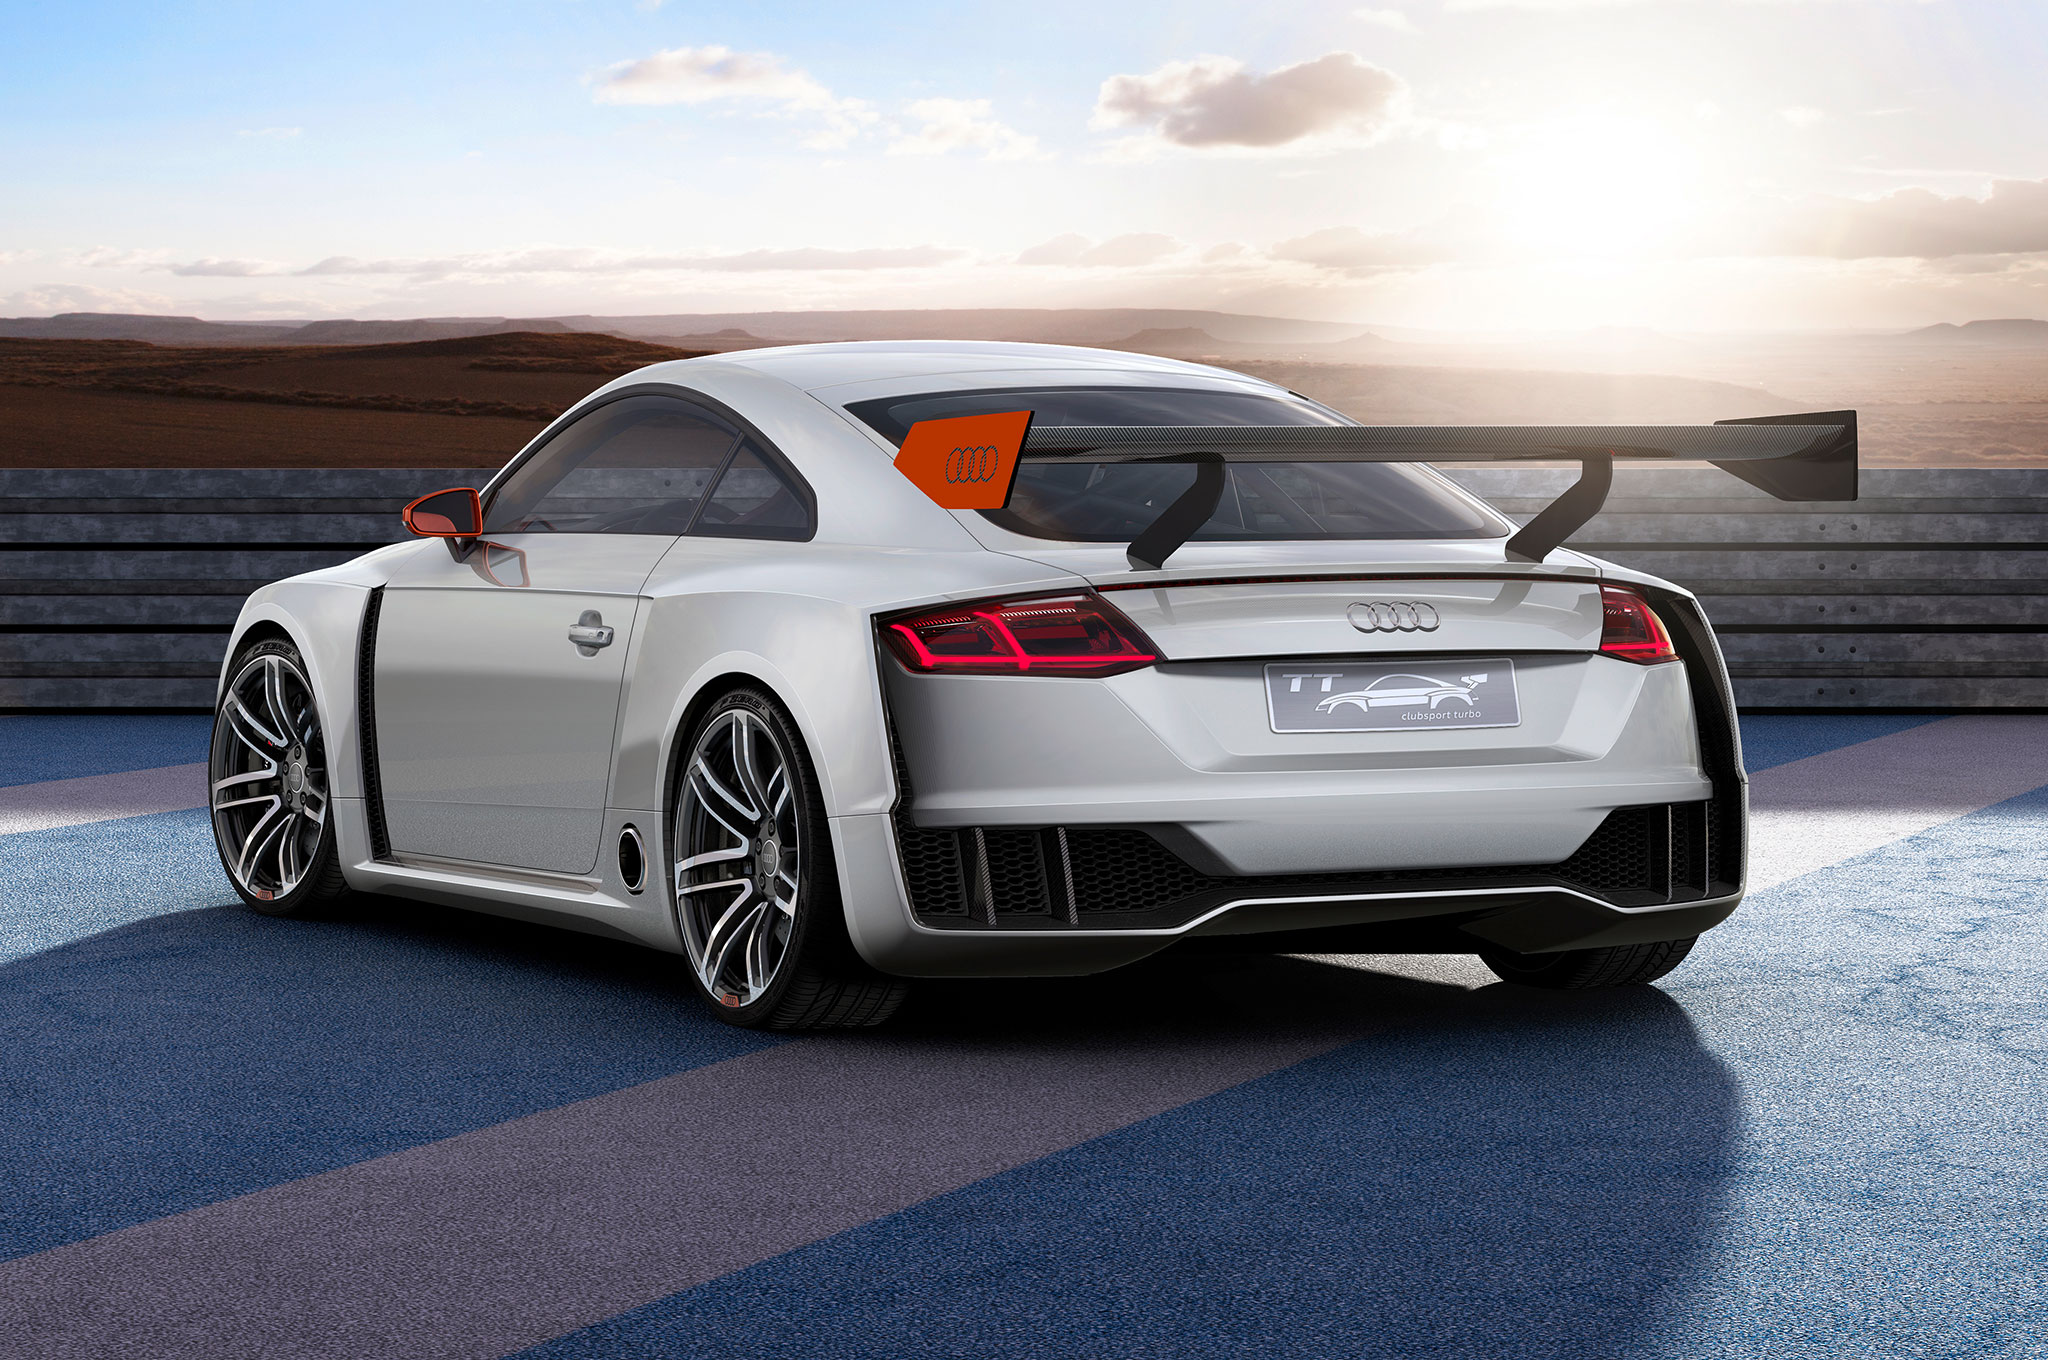 600hp Audi Tt Clubsport Turbo Unveiled